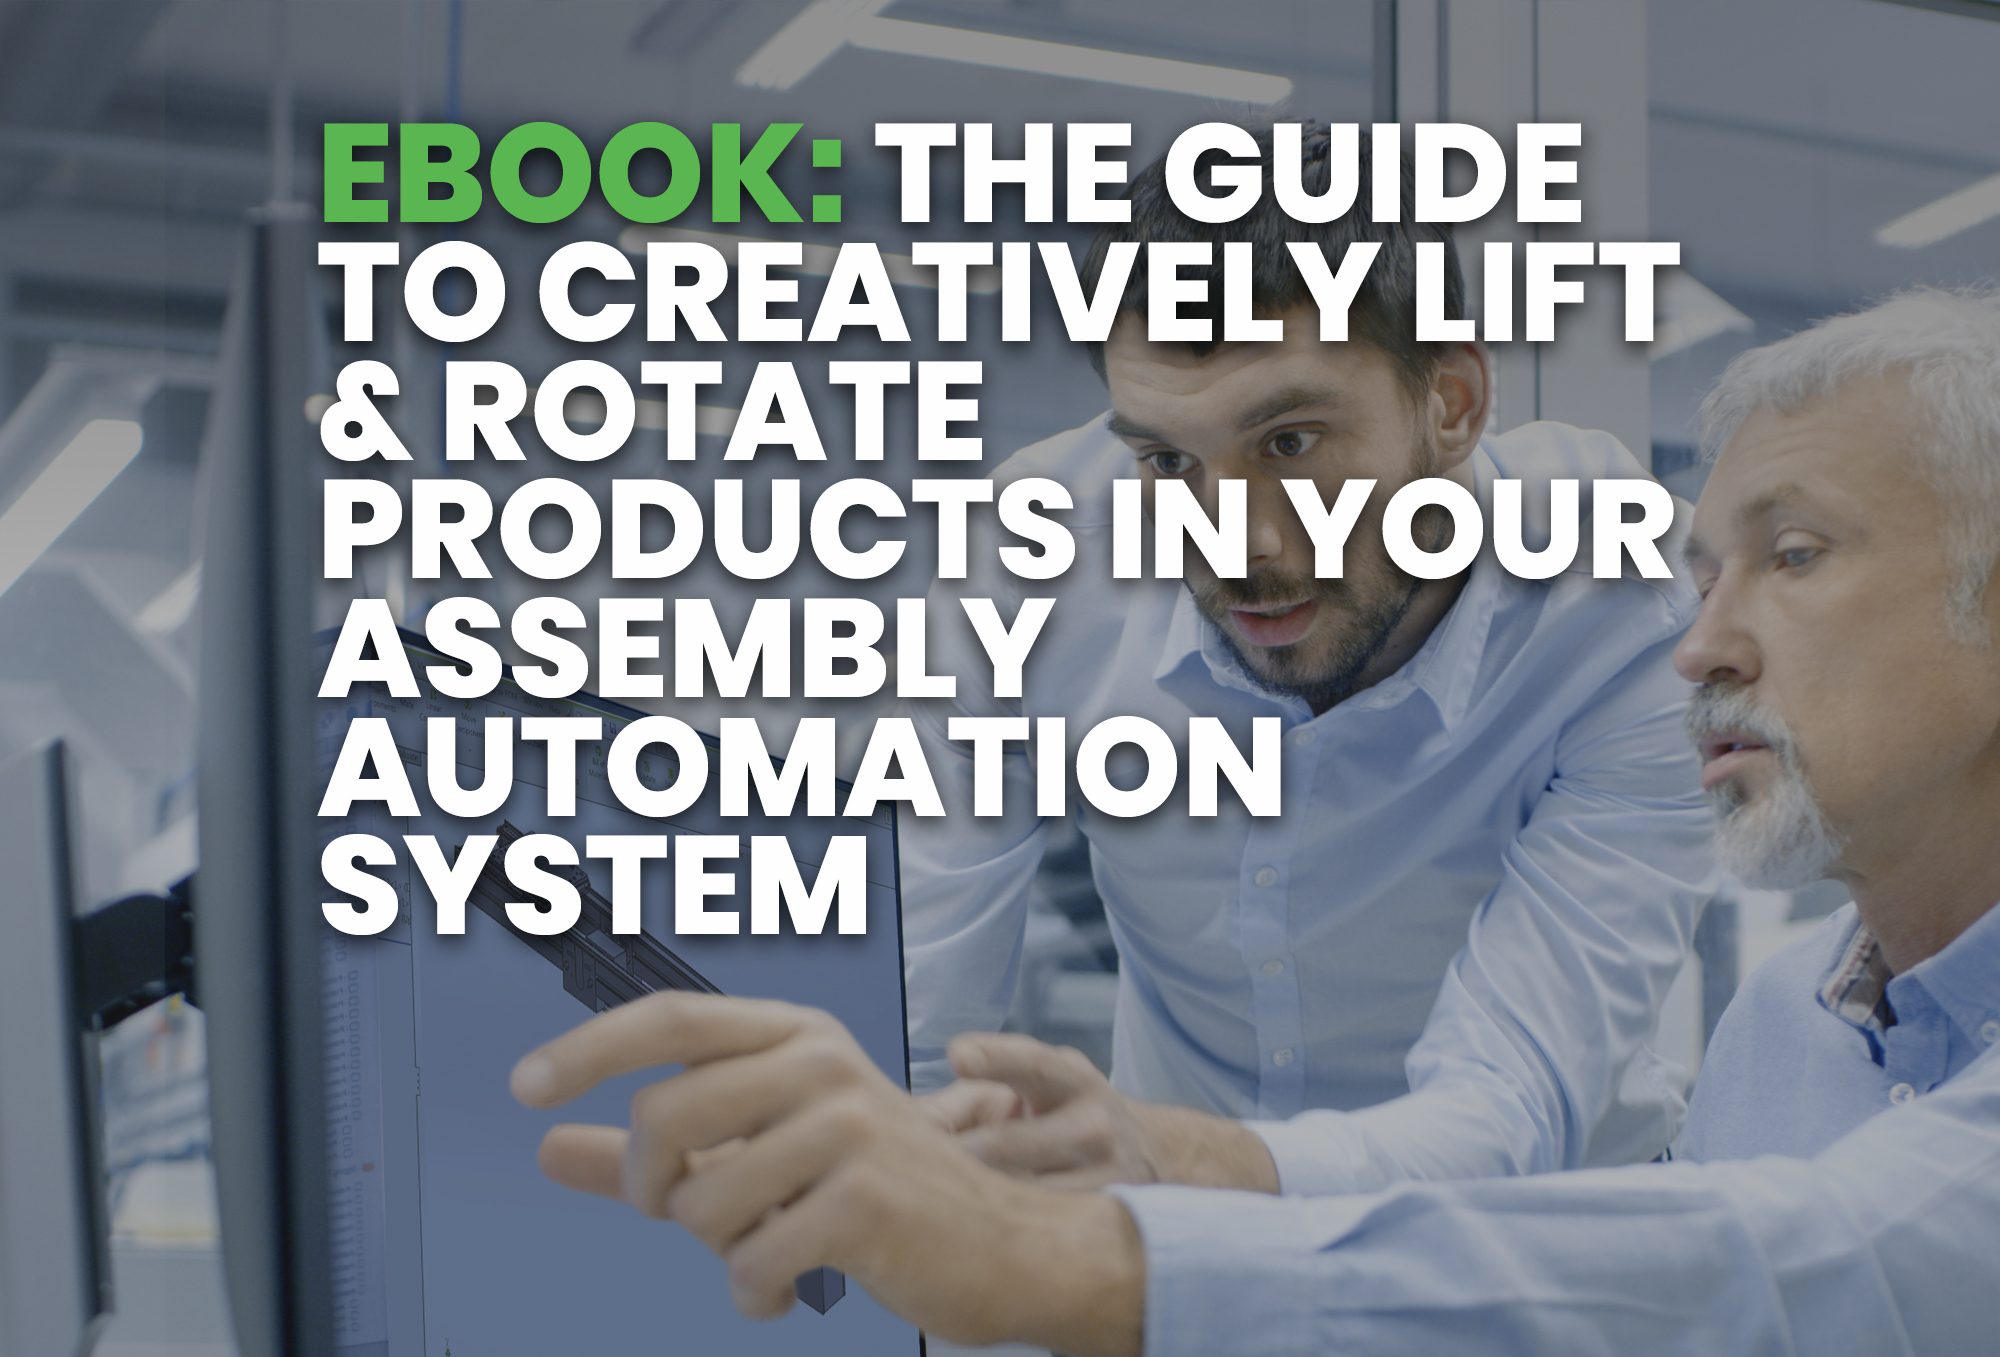 ebook- The Guide To Creatively Lift & Rotate Products in your Assembly Automation System